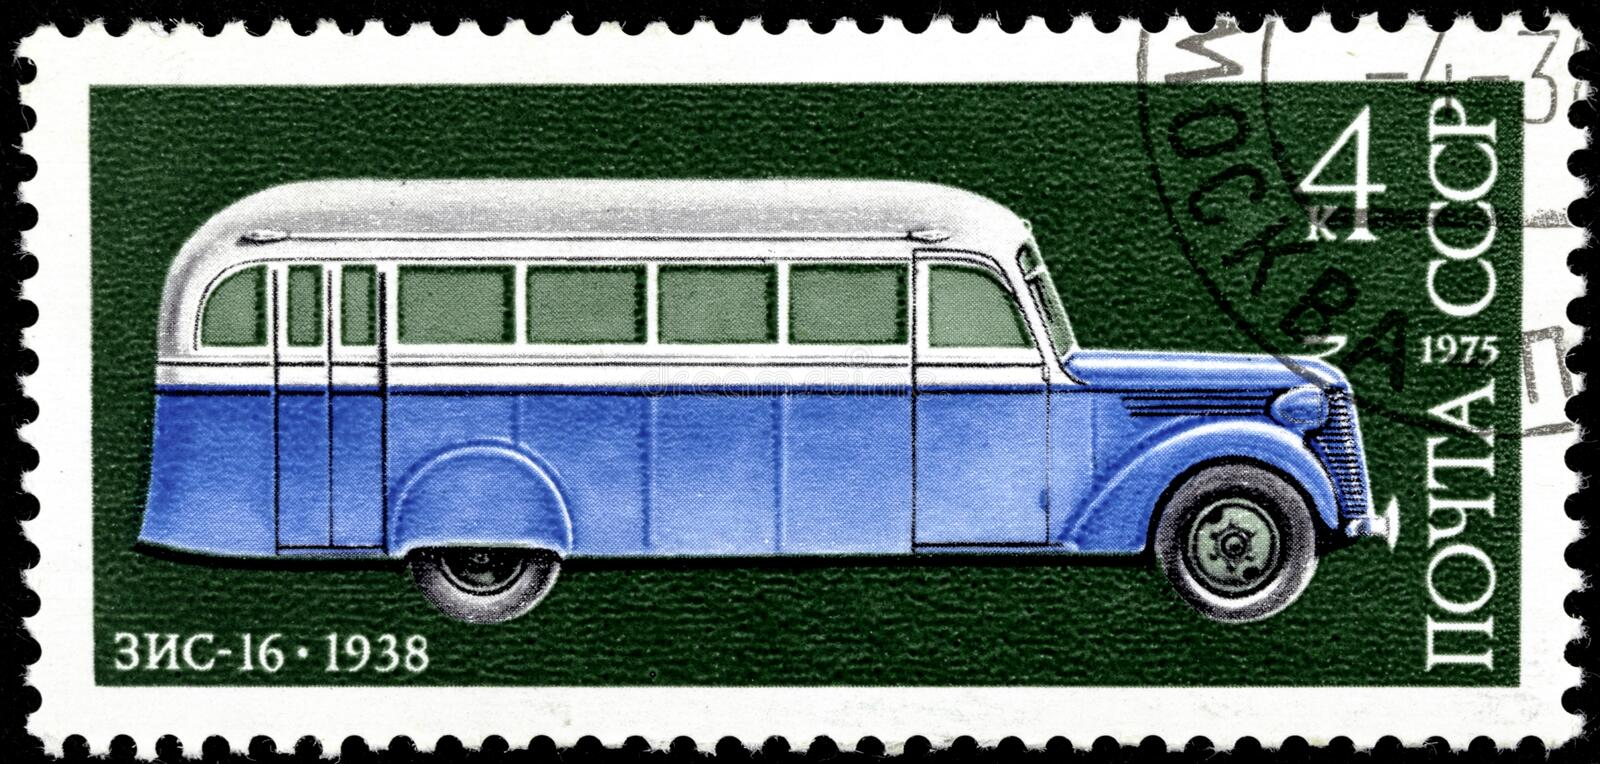 11 14 2019 Divnoe Stavropol Territory Russia postage stamp USSR 1975 ZIS-16 1938 bus on the green background royalty free stock images